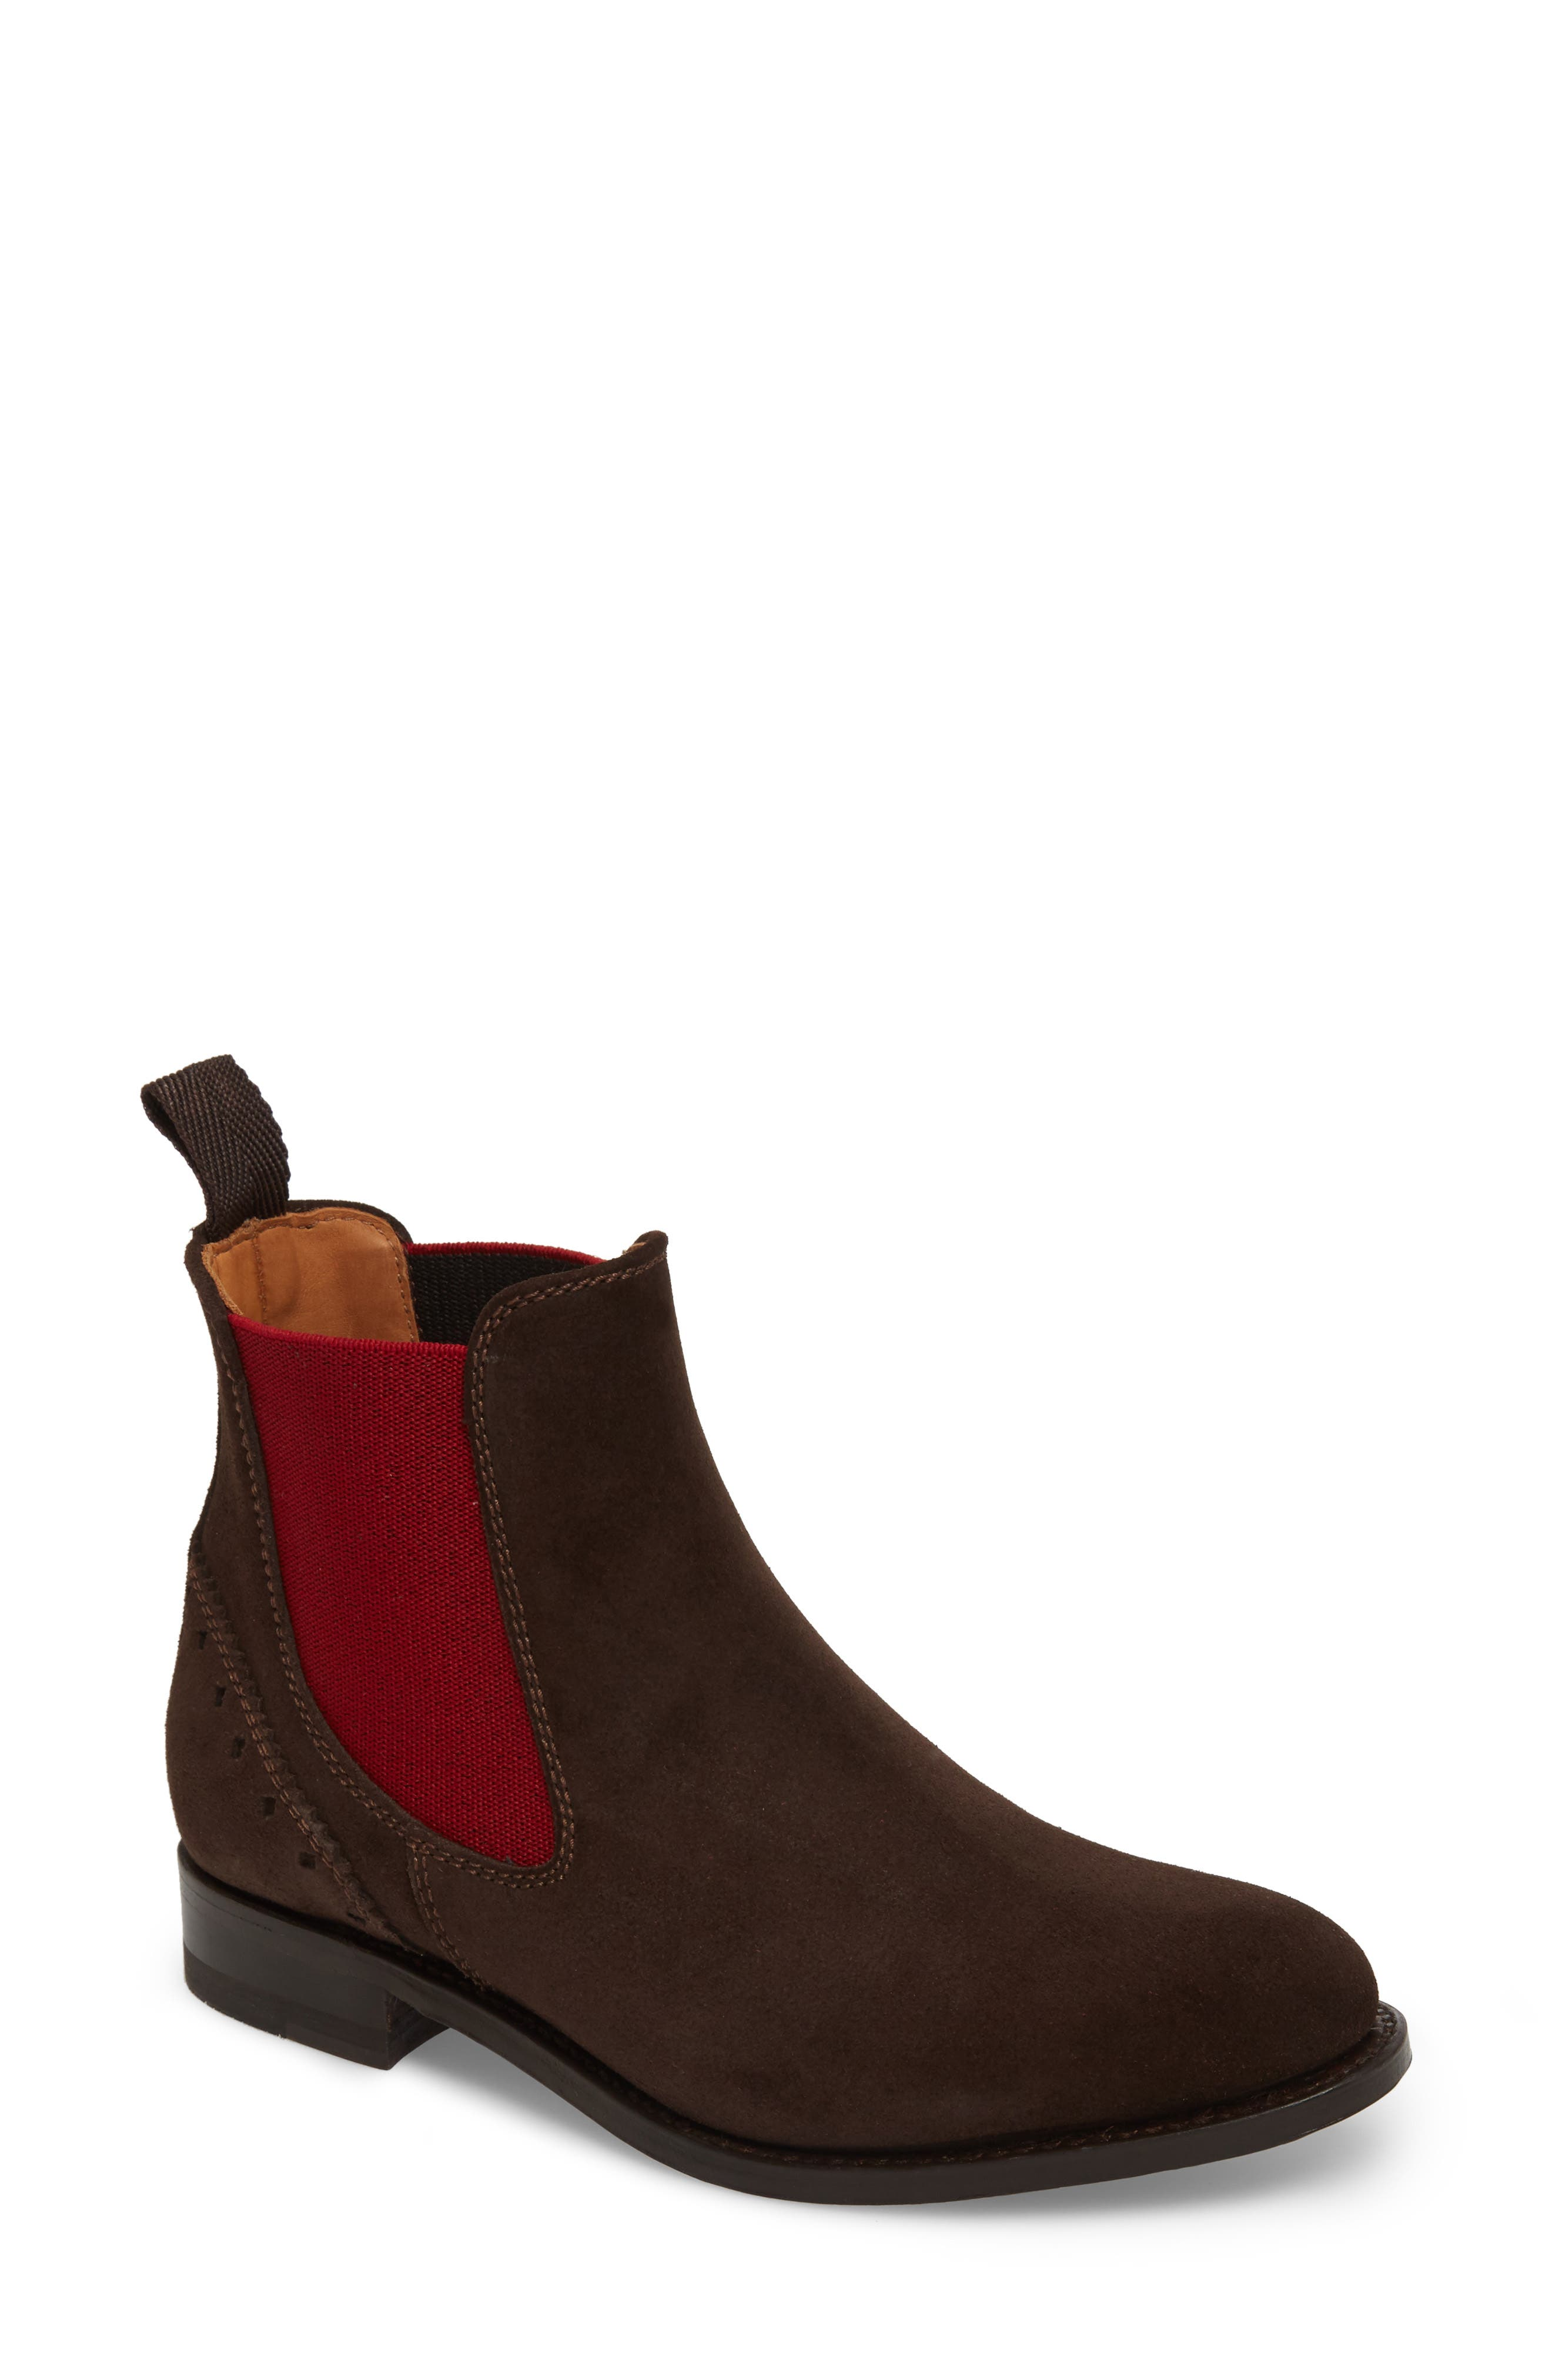 Benissa Lux Chelsea Boot,                             Main thumbnail 1, color,                             Brown Suede